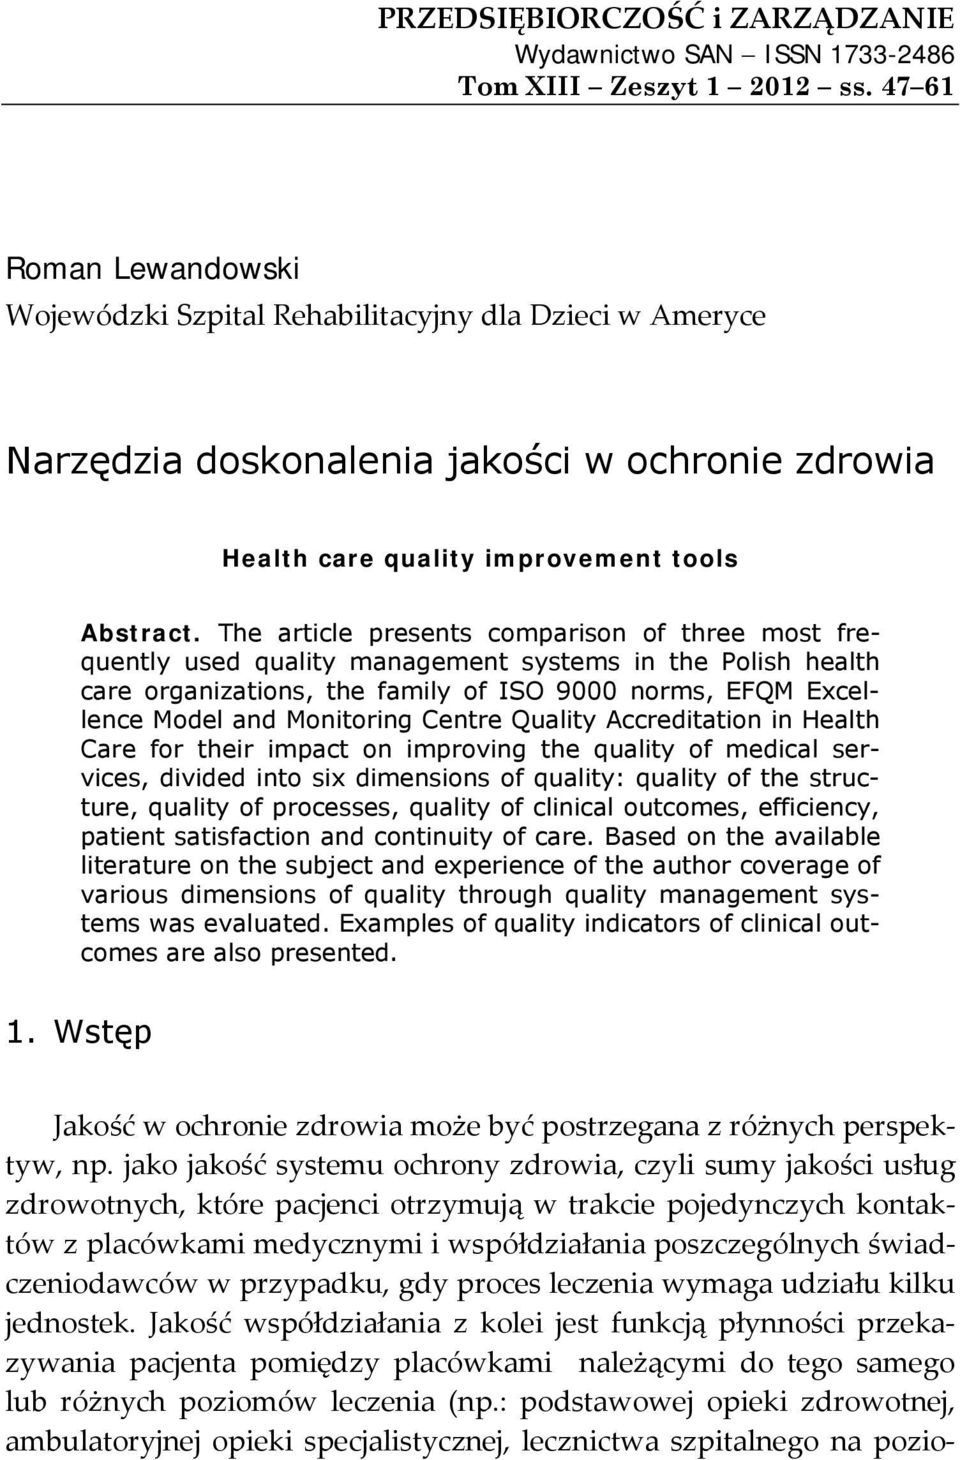 The article presents comparison of three most frequently used quality management systems in the Polish health care organizations, the family of ISO 9000 norms, EFQM Excellence Model and Monitoring